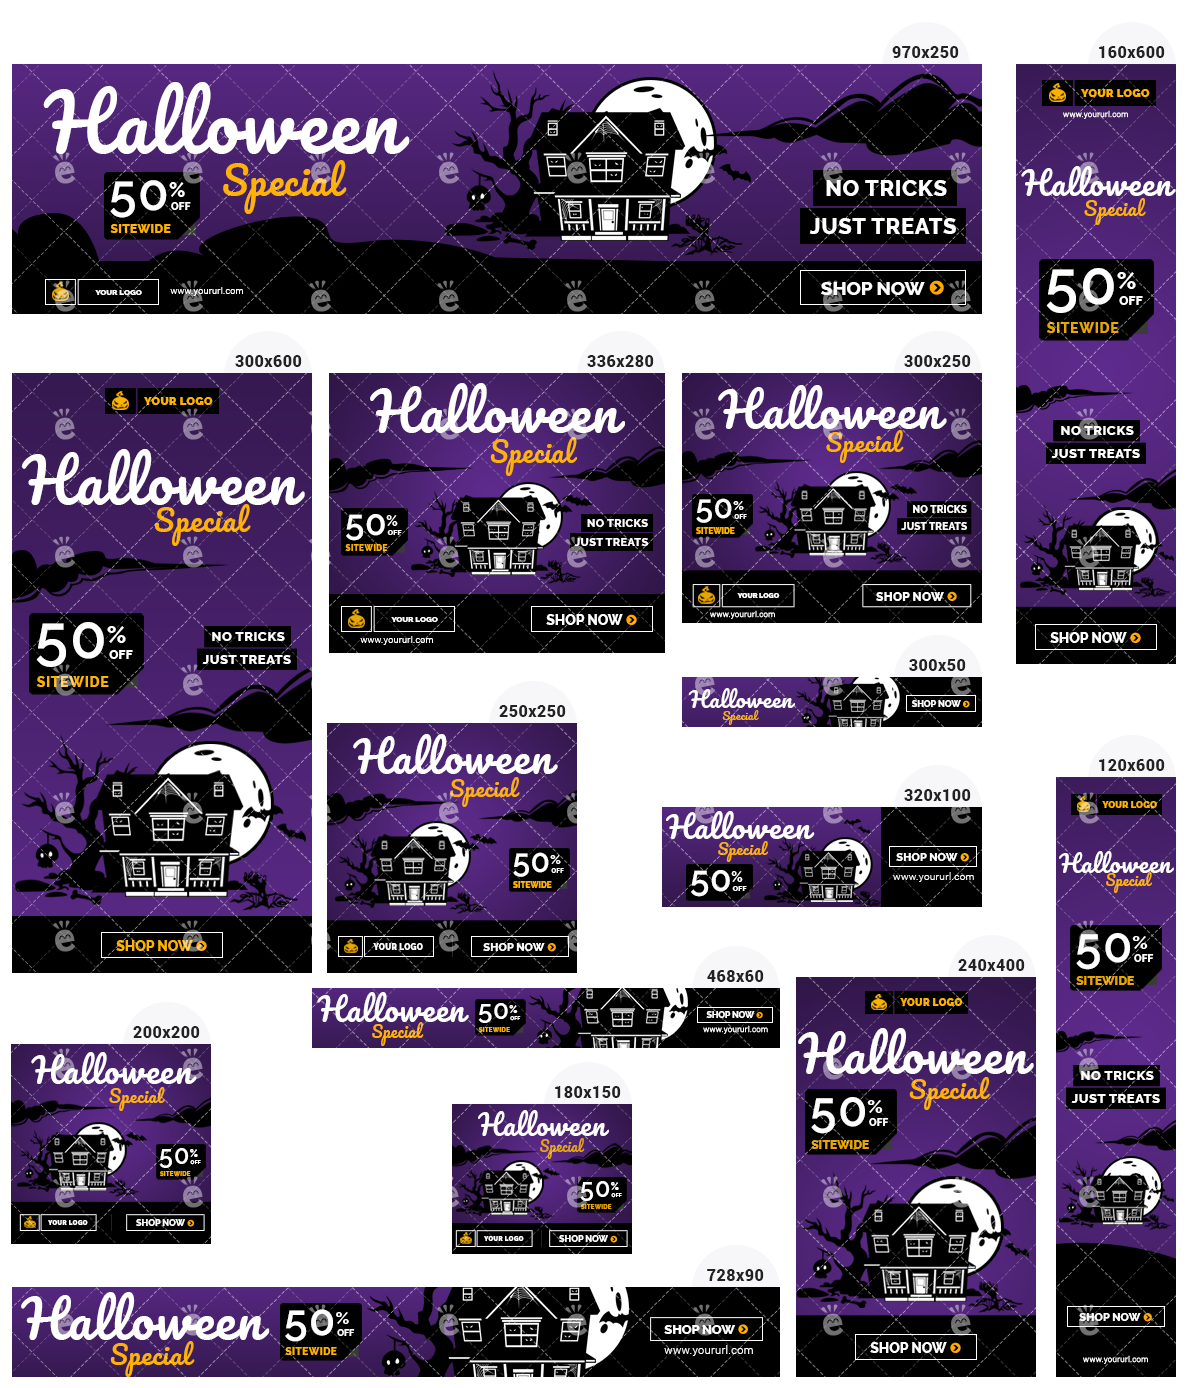 Halloween Banner Set 4 - Purple Background Haunted House